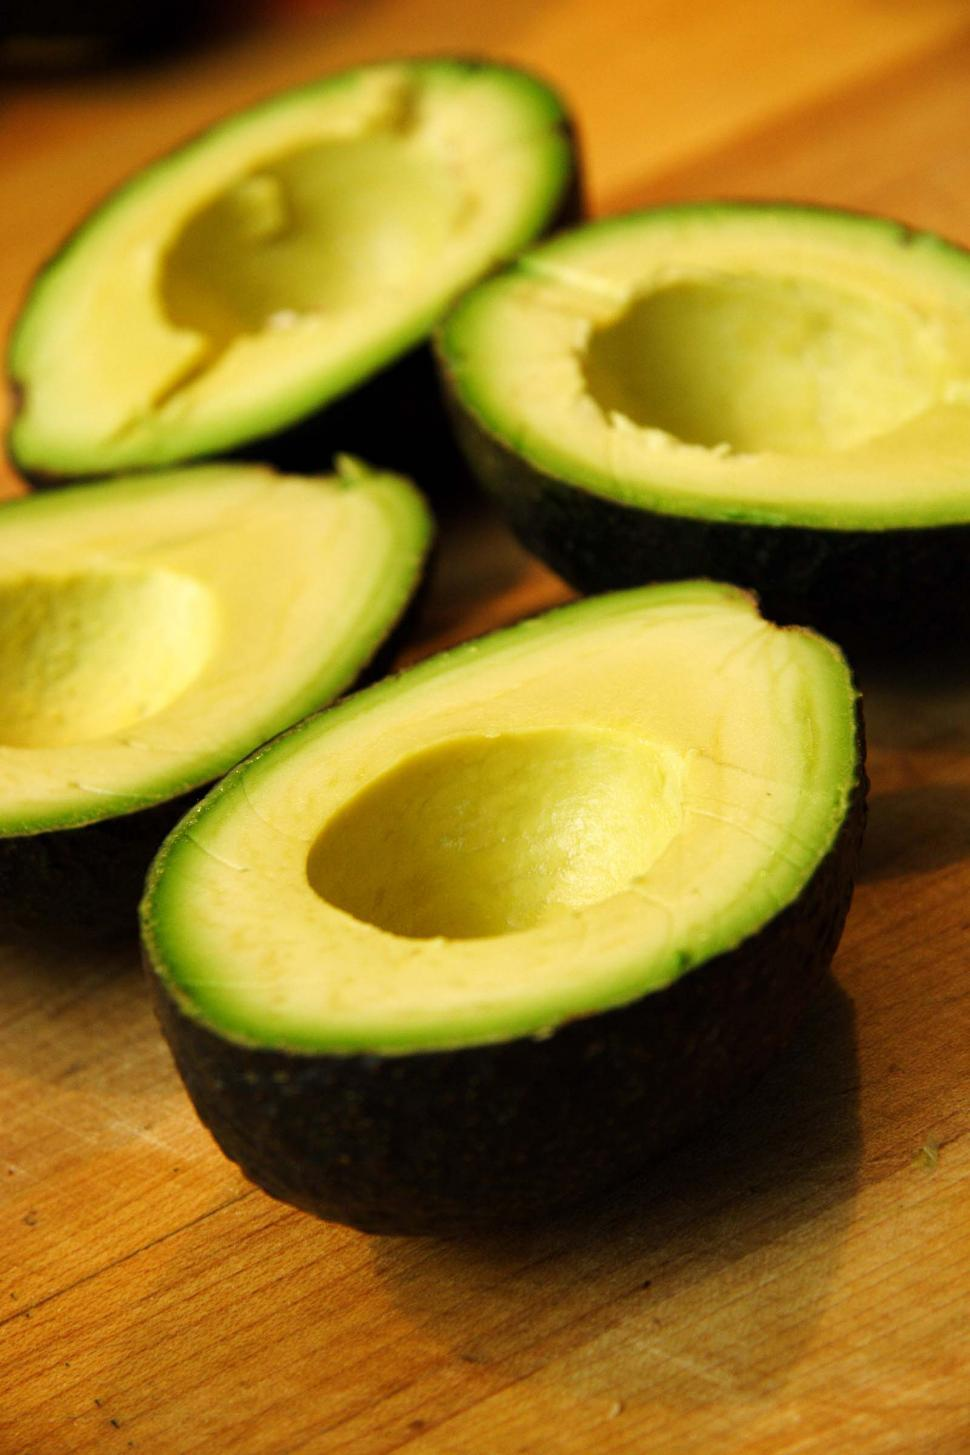 Download Free Stock Photo of Four avocado halves